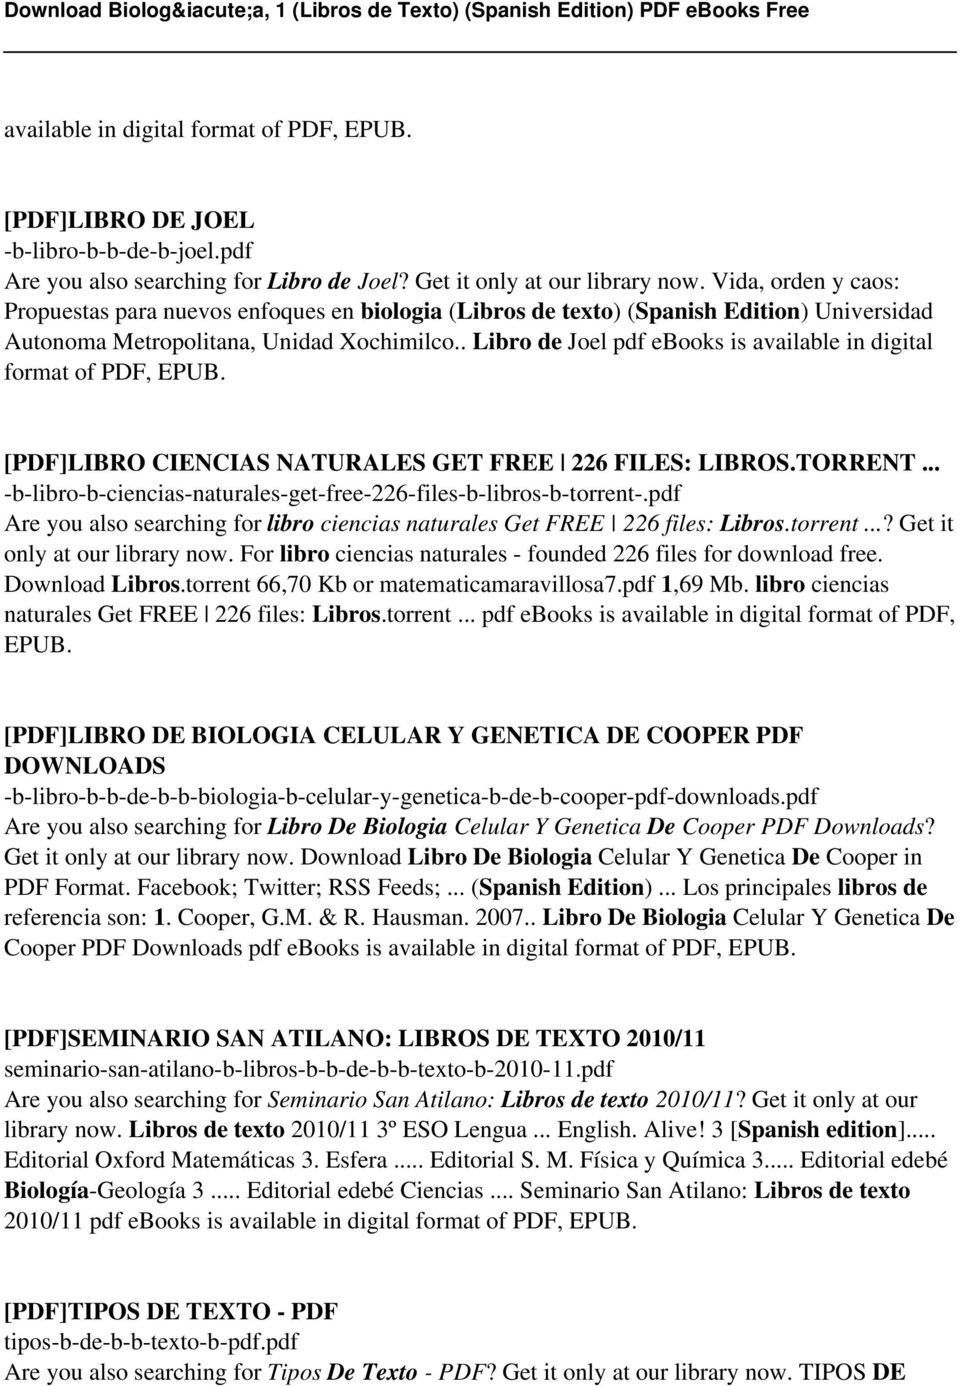 Biologa 1 libros de texto spanish edition pdf pdf libro de joel pdf ebooks is available in digital format of pdf epub fandeluxe Choice Image